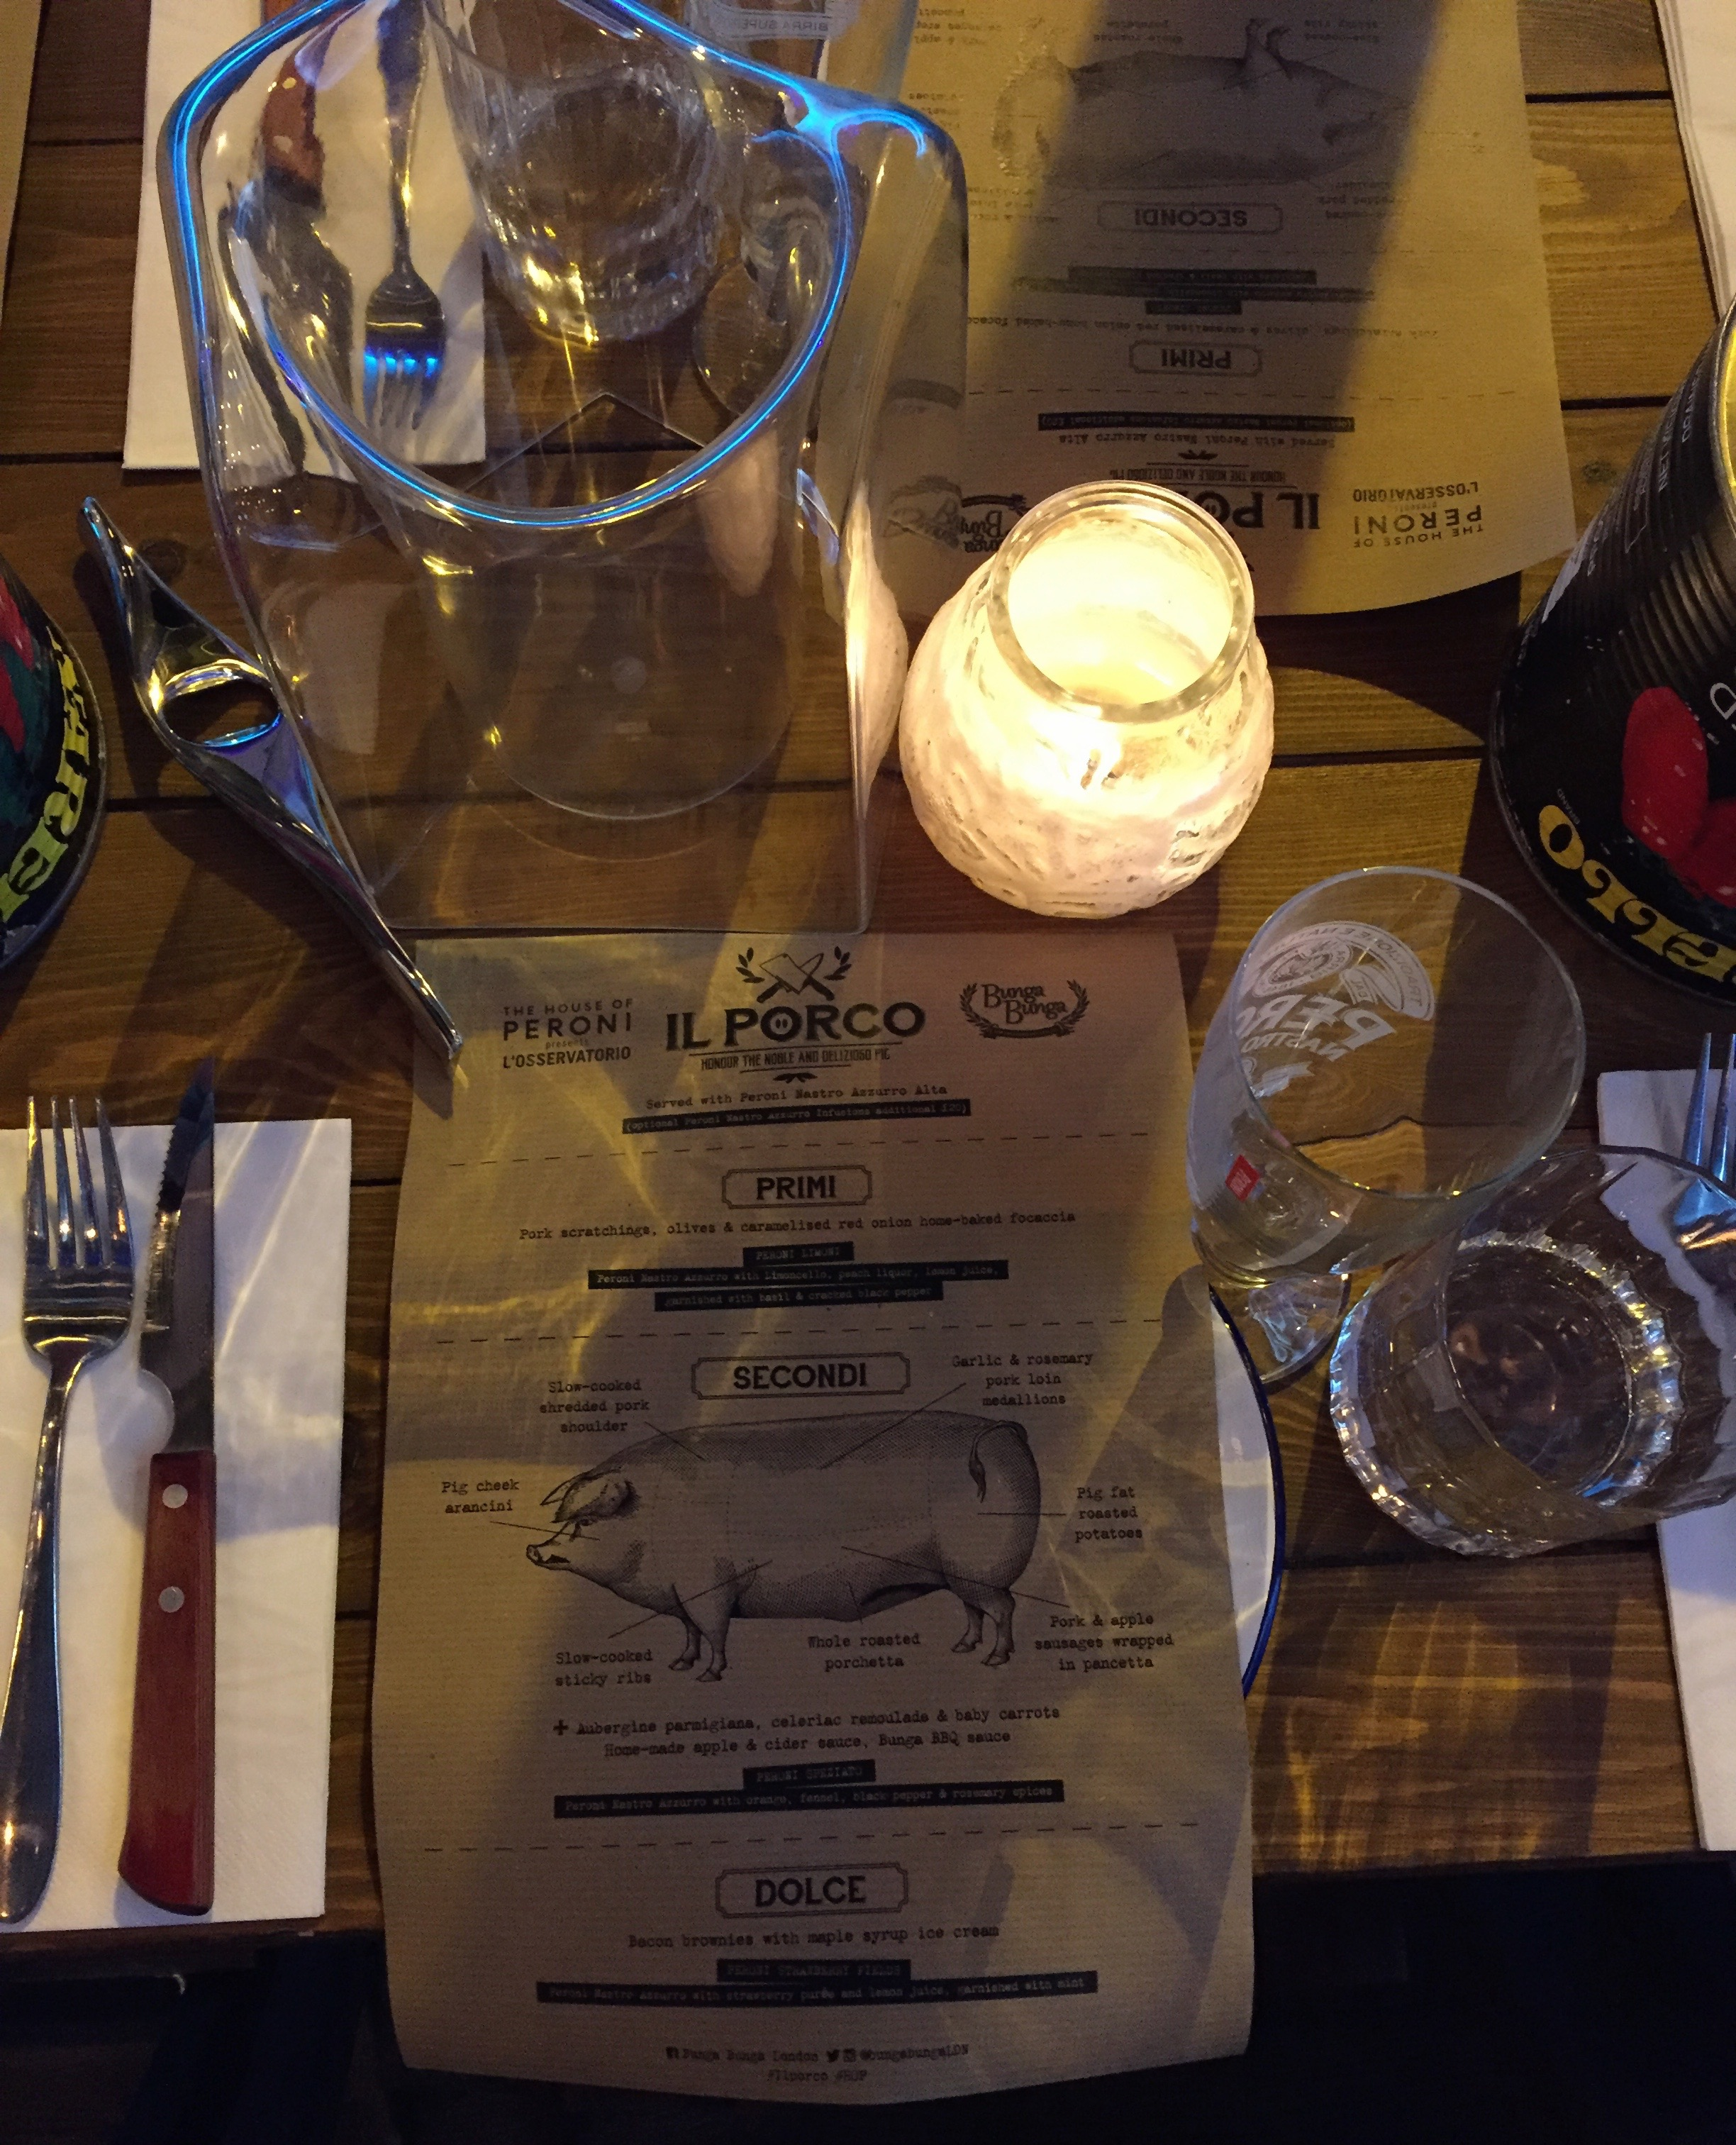 IL PORCO | HOUSE OF PERONI | BUNGA BUNGA | HOG ROAST | WE LOVE FOOD, IT'S ALL WE EAT